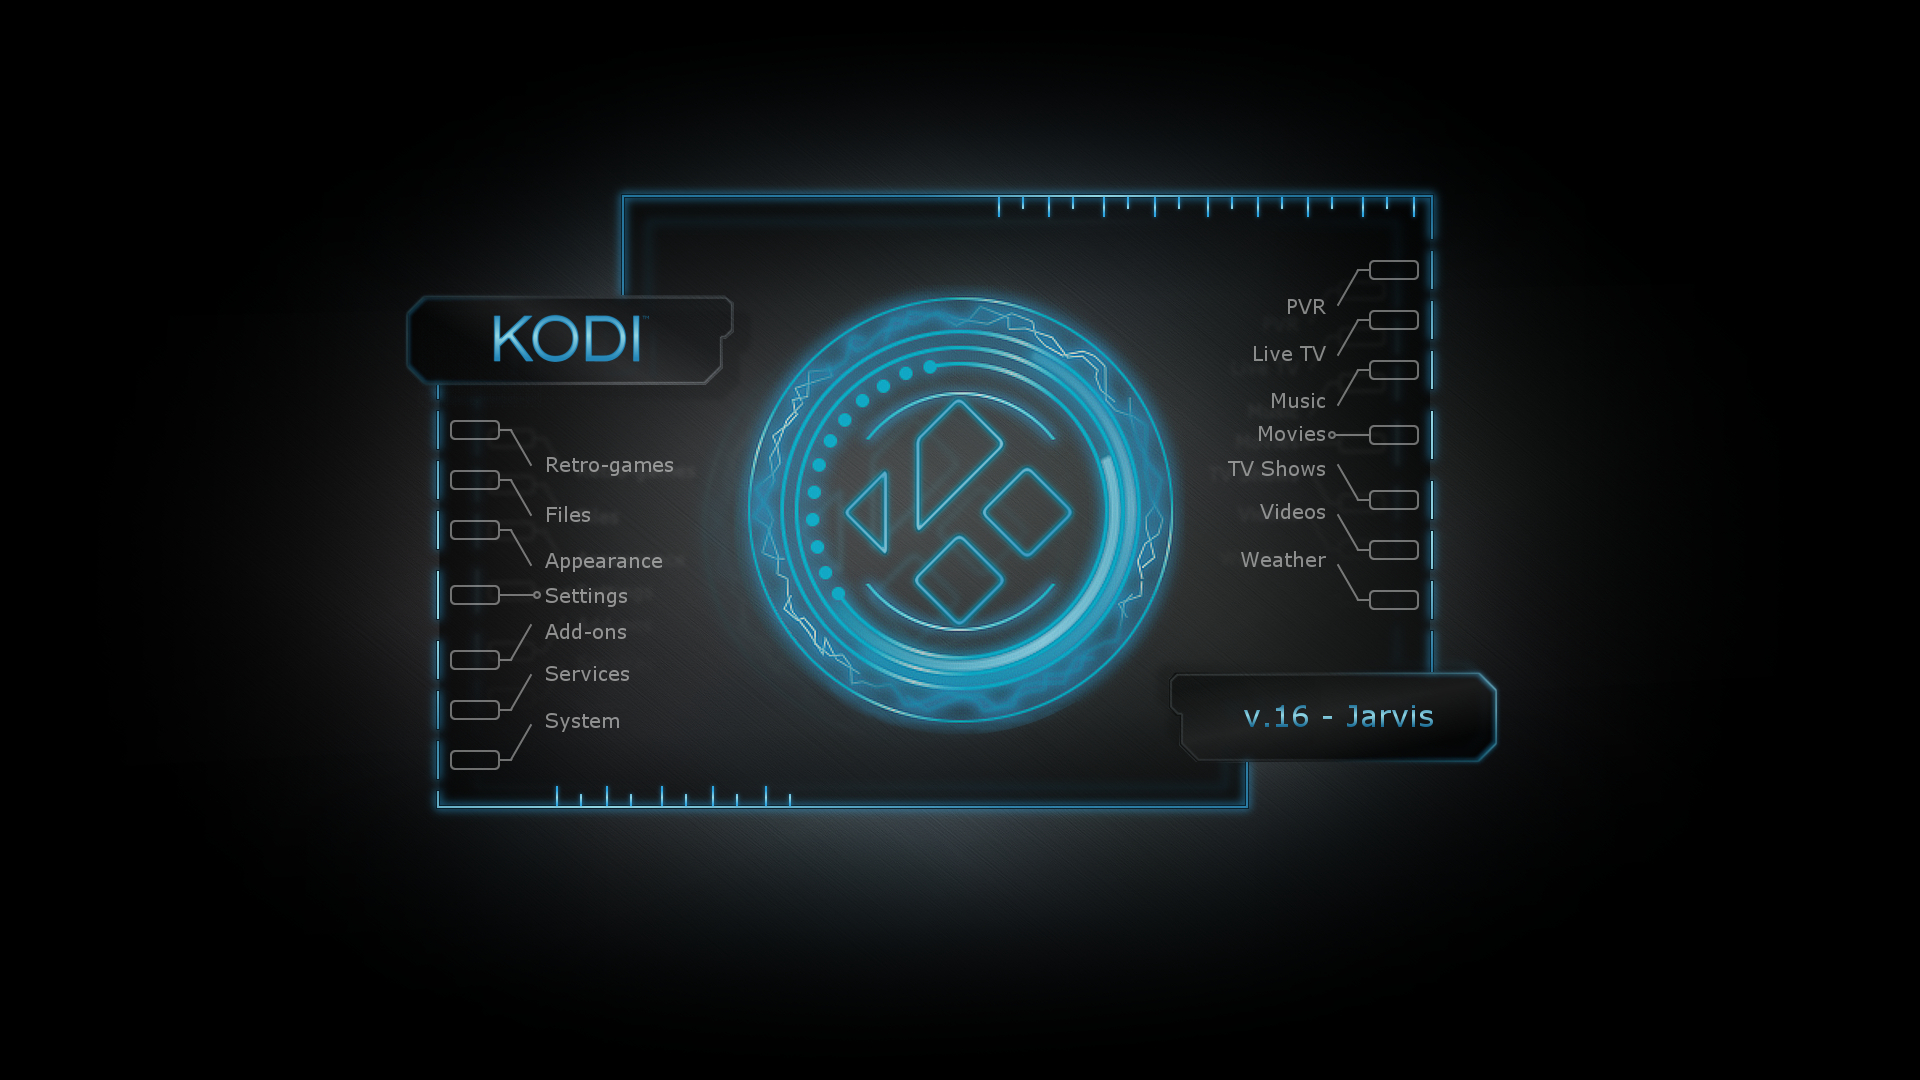 Kodi fanart and wallpaper -  Image 23469178833_916c25ae04_o Jpg